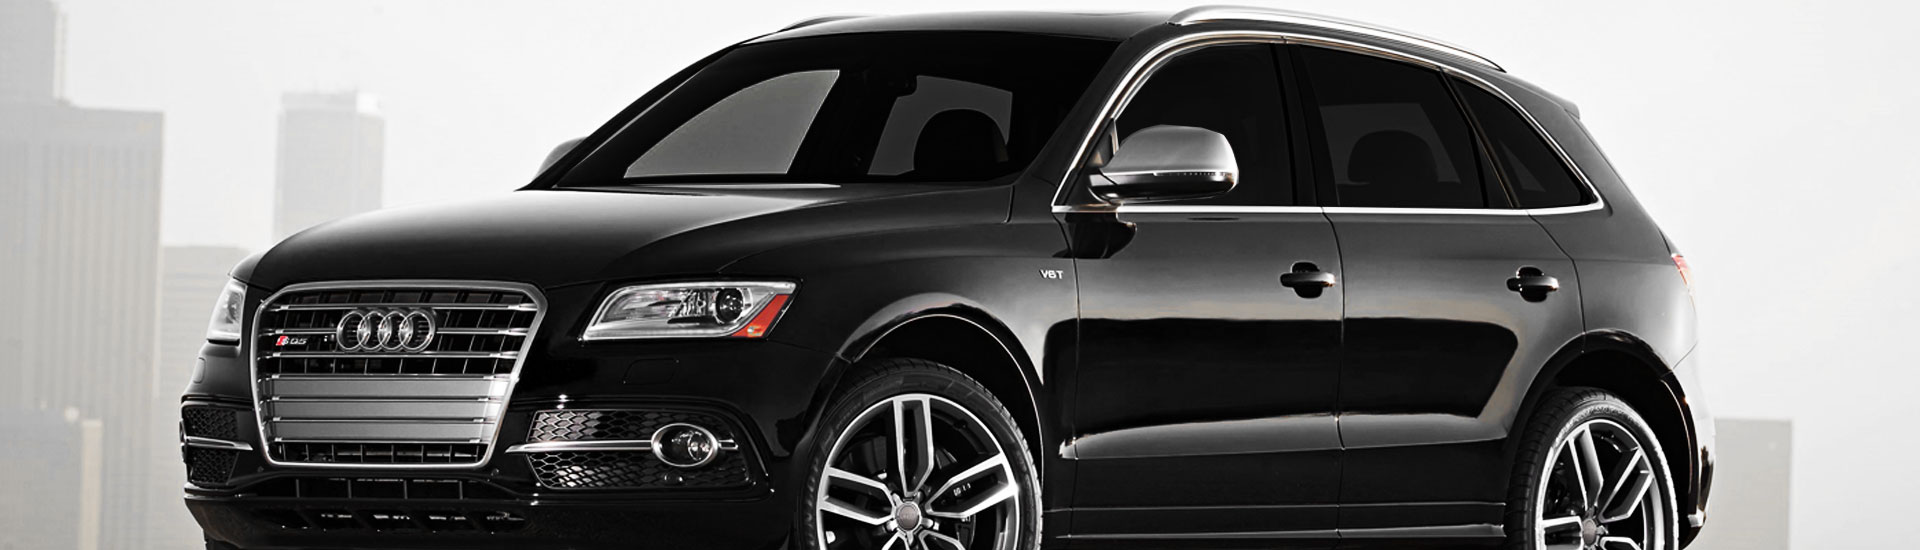 Audi SQ5 Window Tint